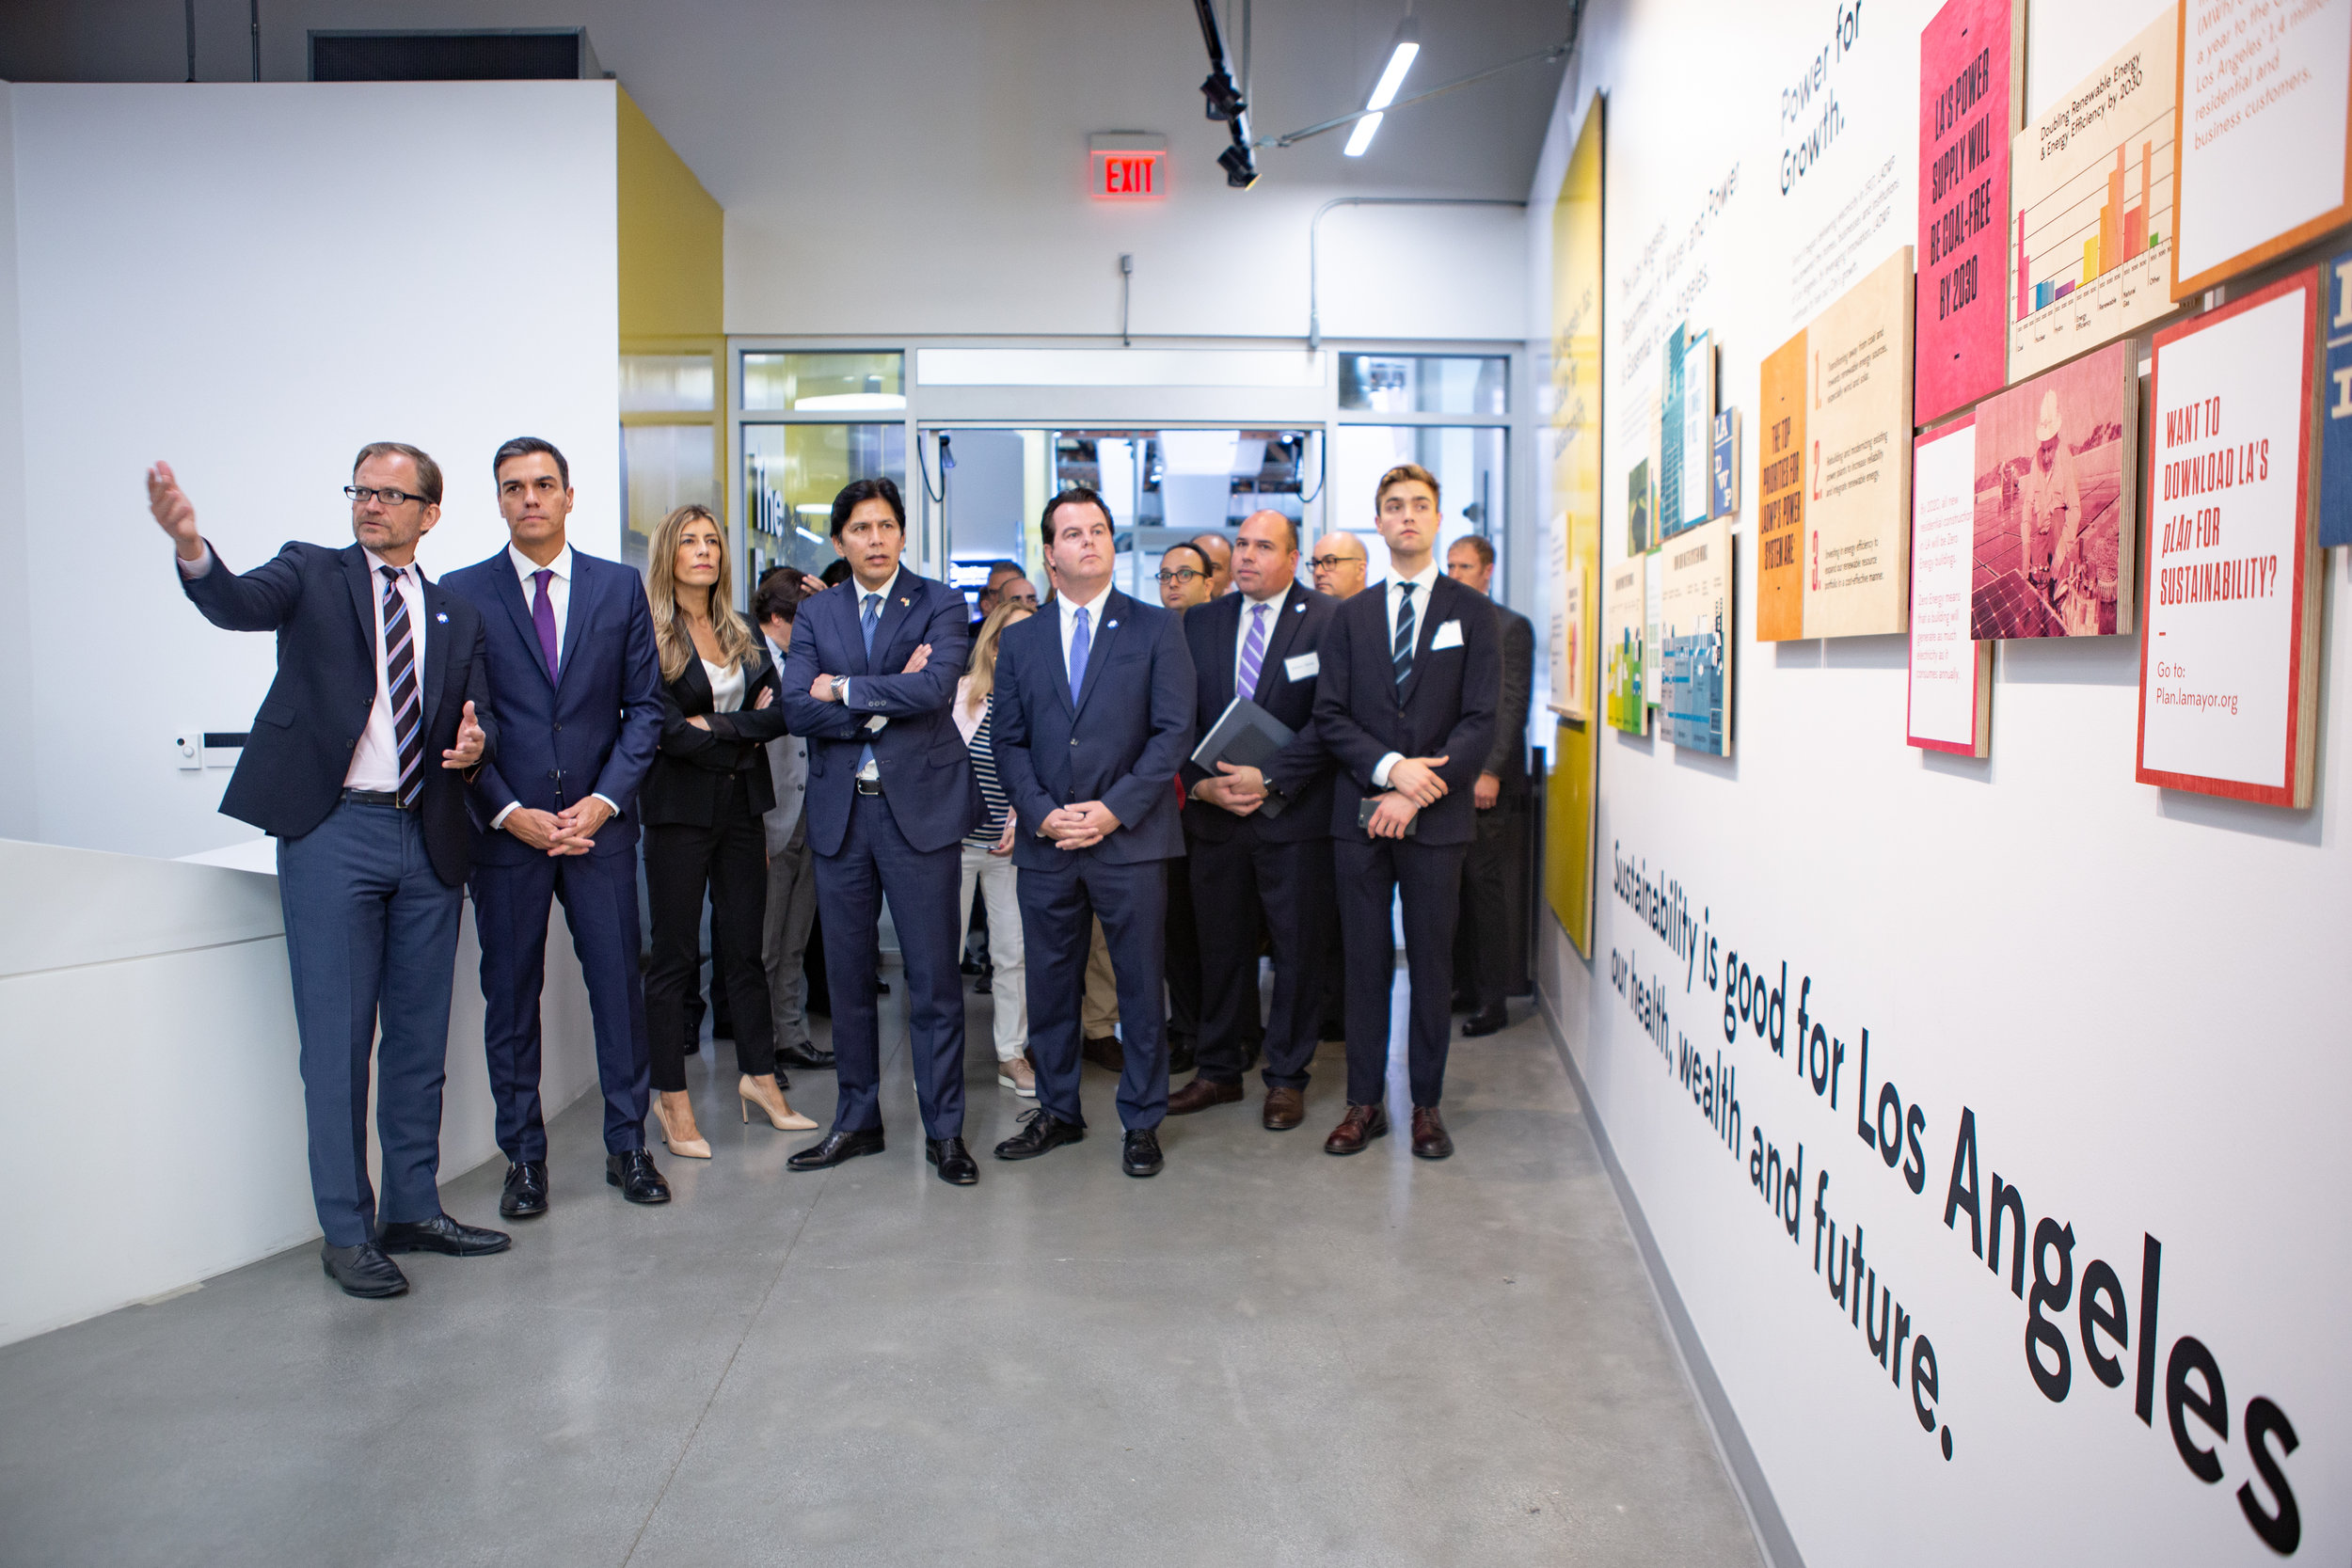 LACI CEO Matt Petersen welcomes the President of the Government of Spain Pedro Sanchez and First Lady María Begoña Gómez Fernández for a tour of the facility and a discussion on the importance of climate action and Latino leadership.    Senate President pro Tempore Emeritus Kevin de León invited the President to LACI at La Kretz Innovation Campus, which are in de León's district area.